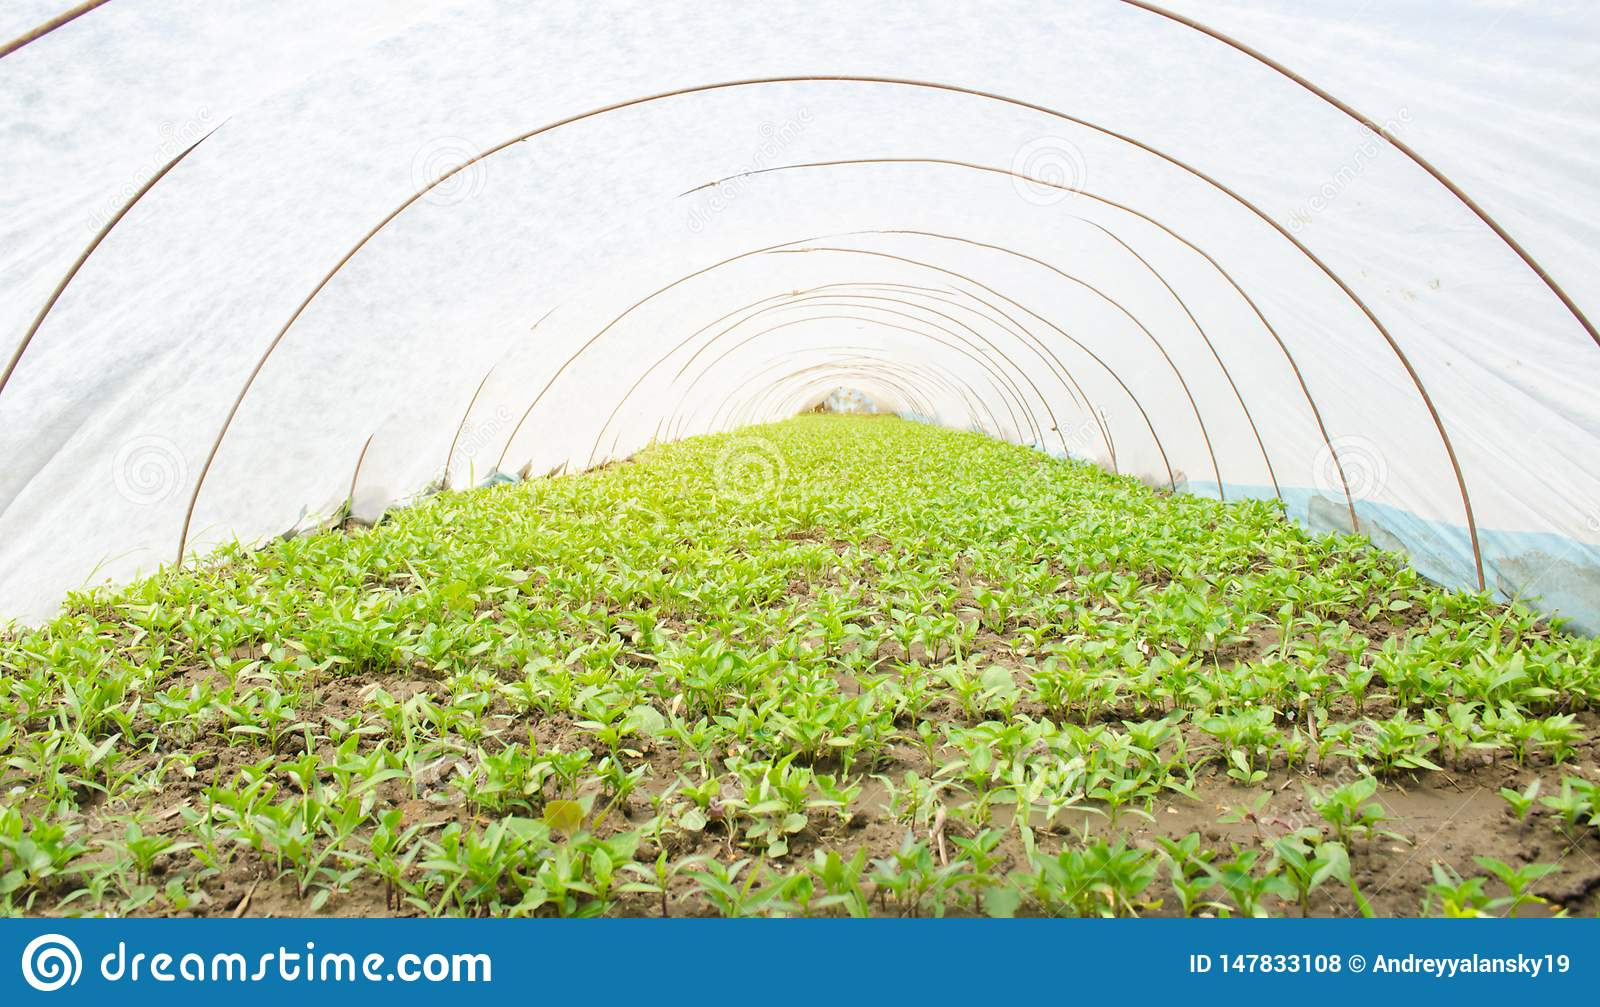 Seedlings of young peppers growing in a greenhouse under the plastic film. Growing organic vegetables. Agriculture. Farming.